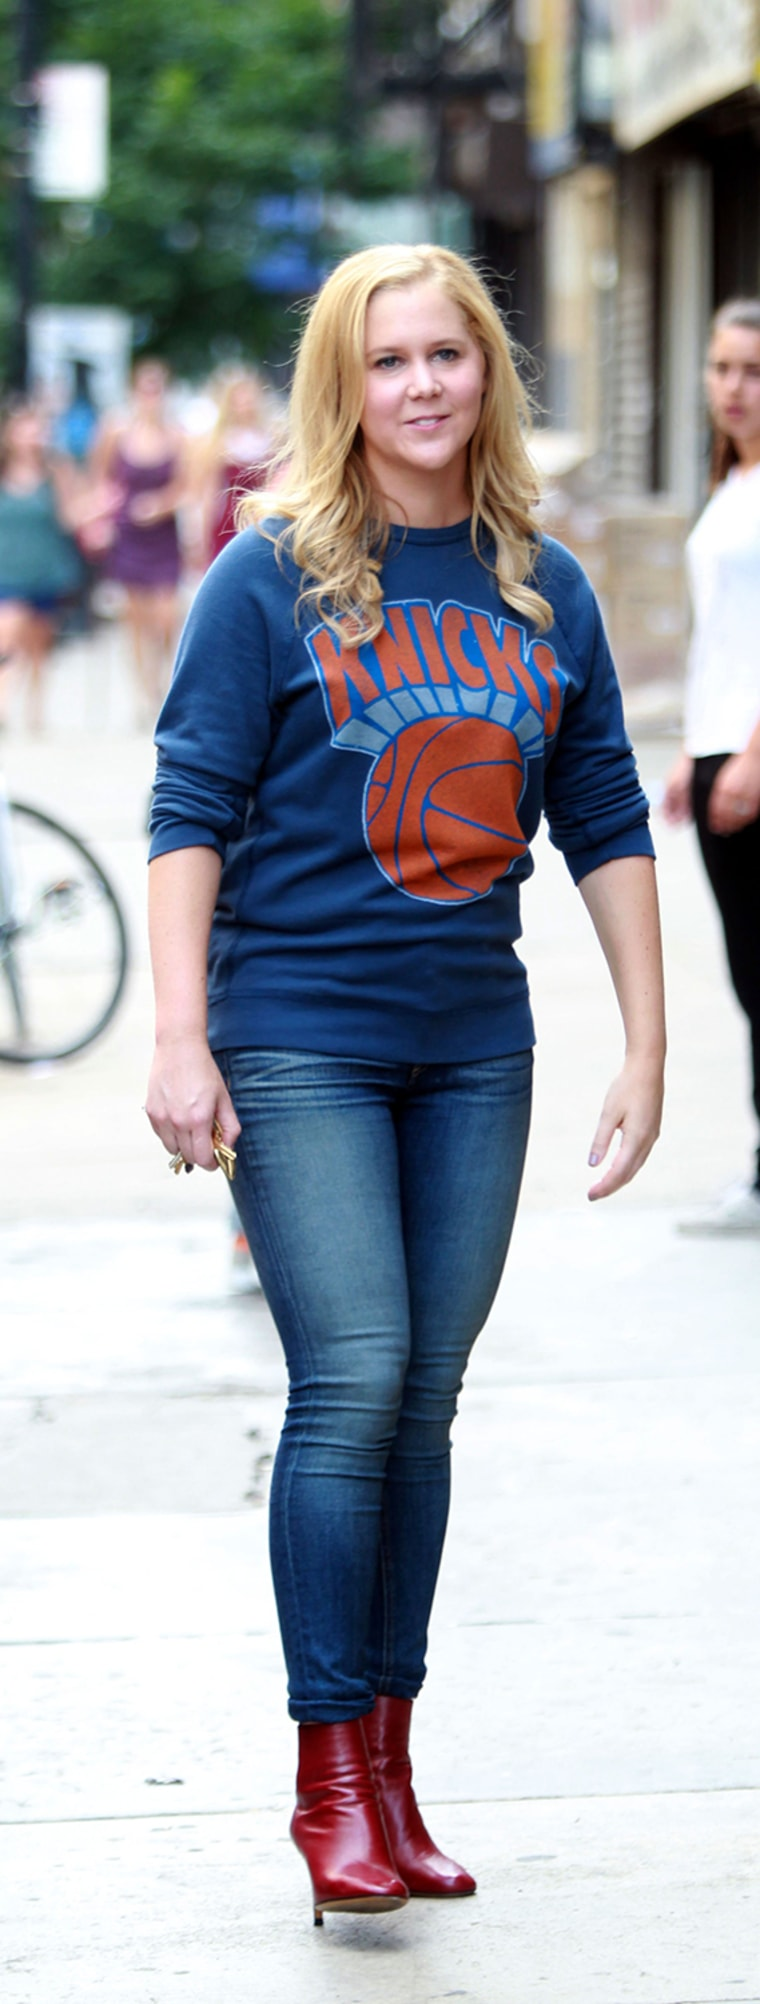 Image: Celebrity Sightings In New York City - July 21, 2014